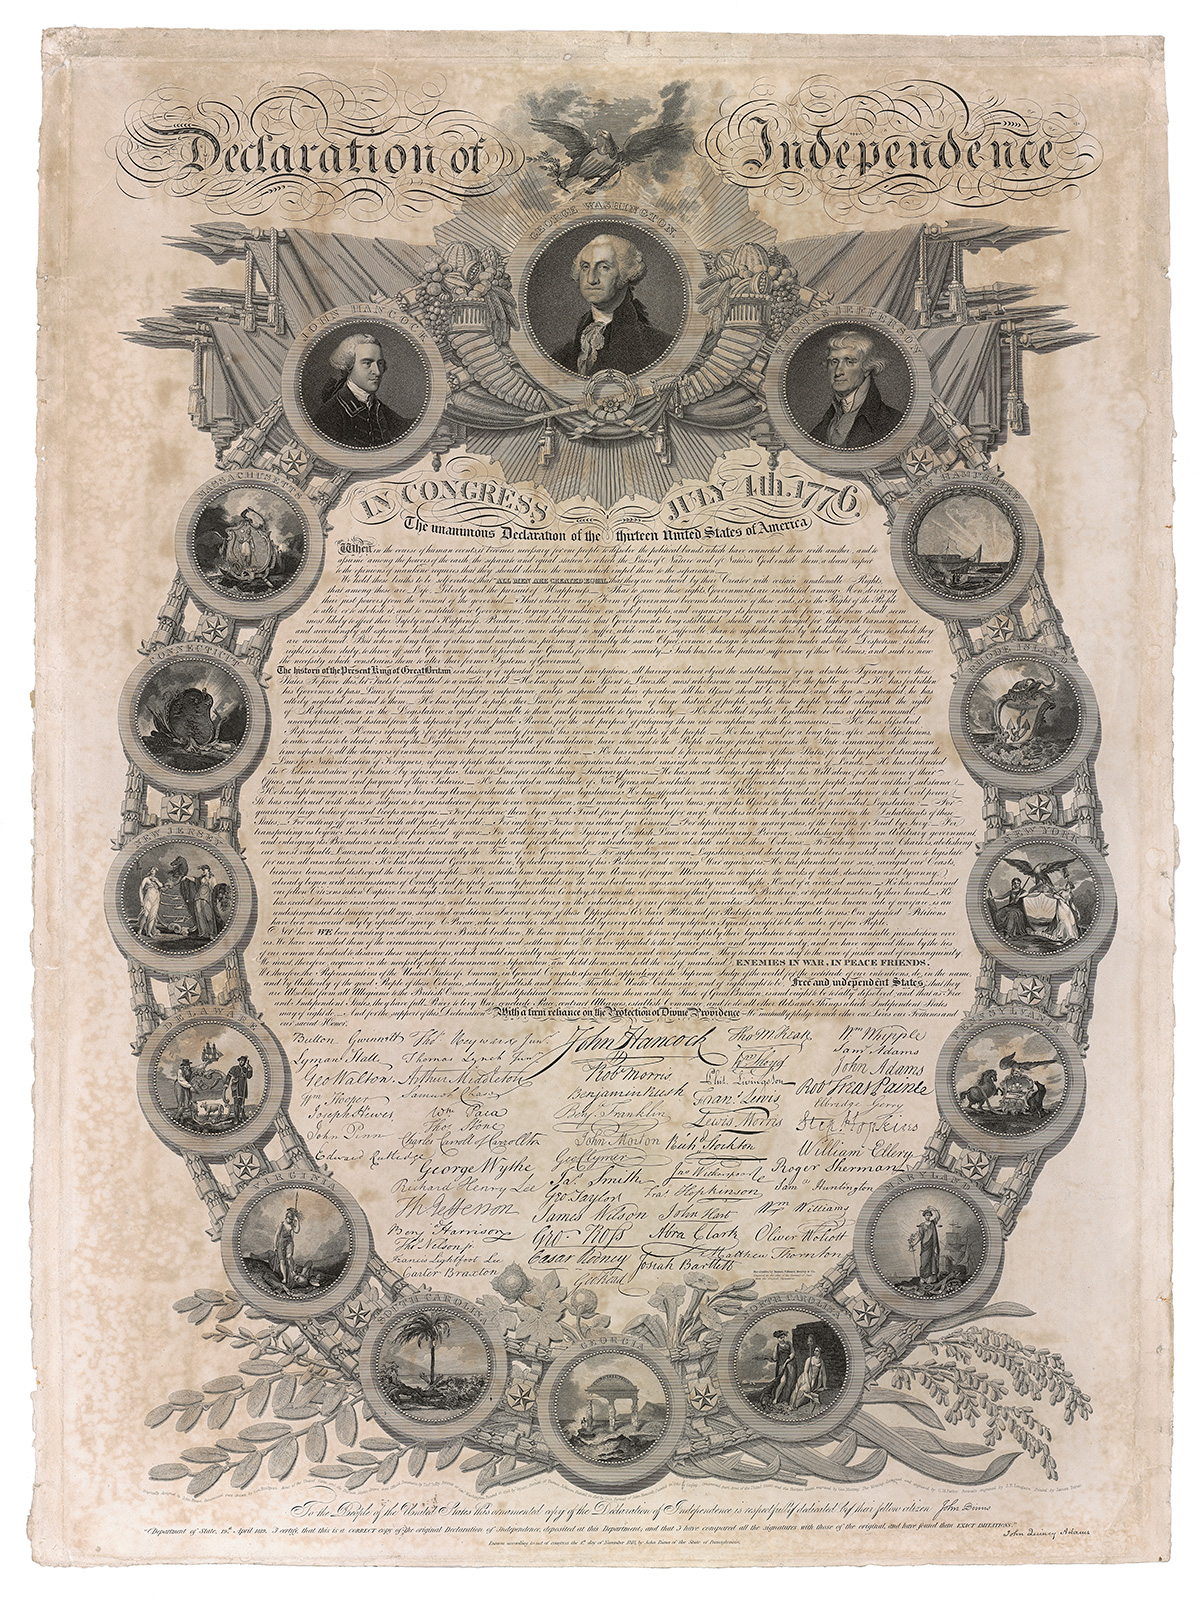 1819 Declaration of Independence